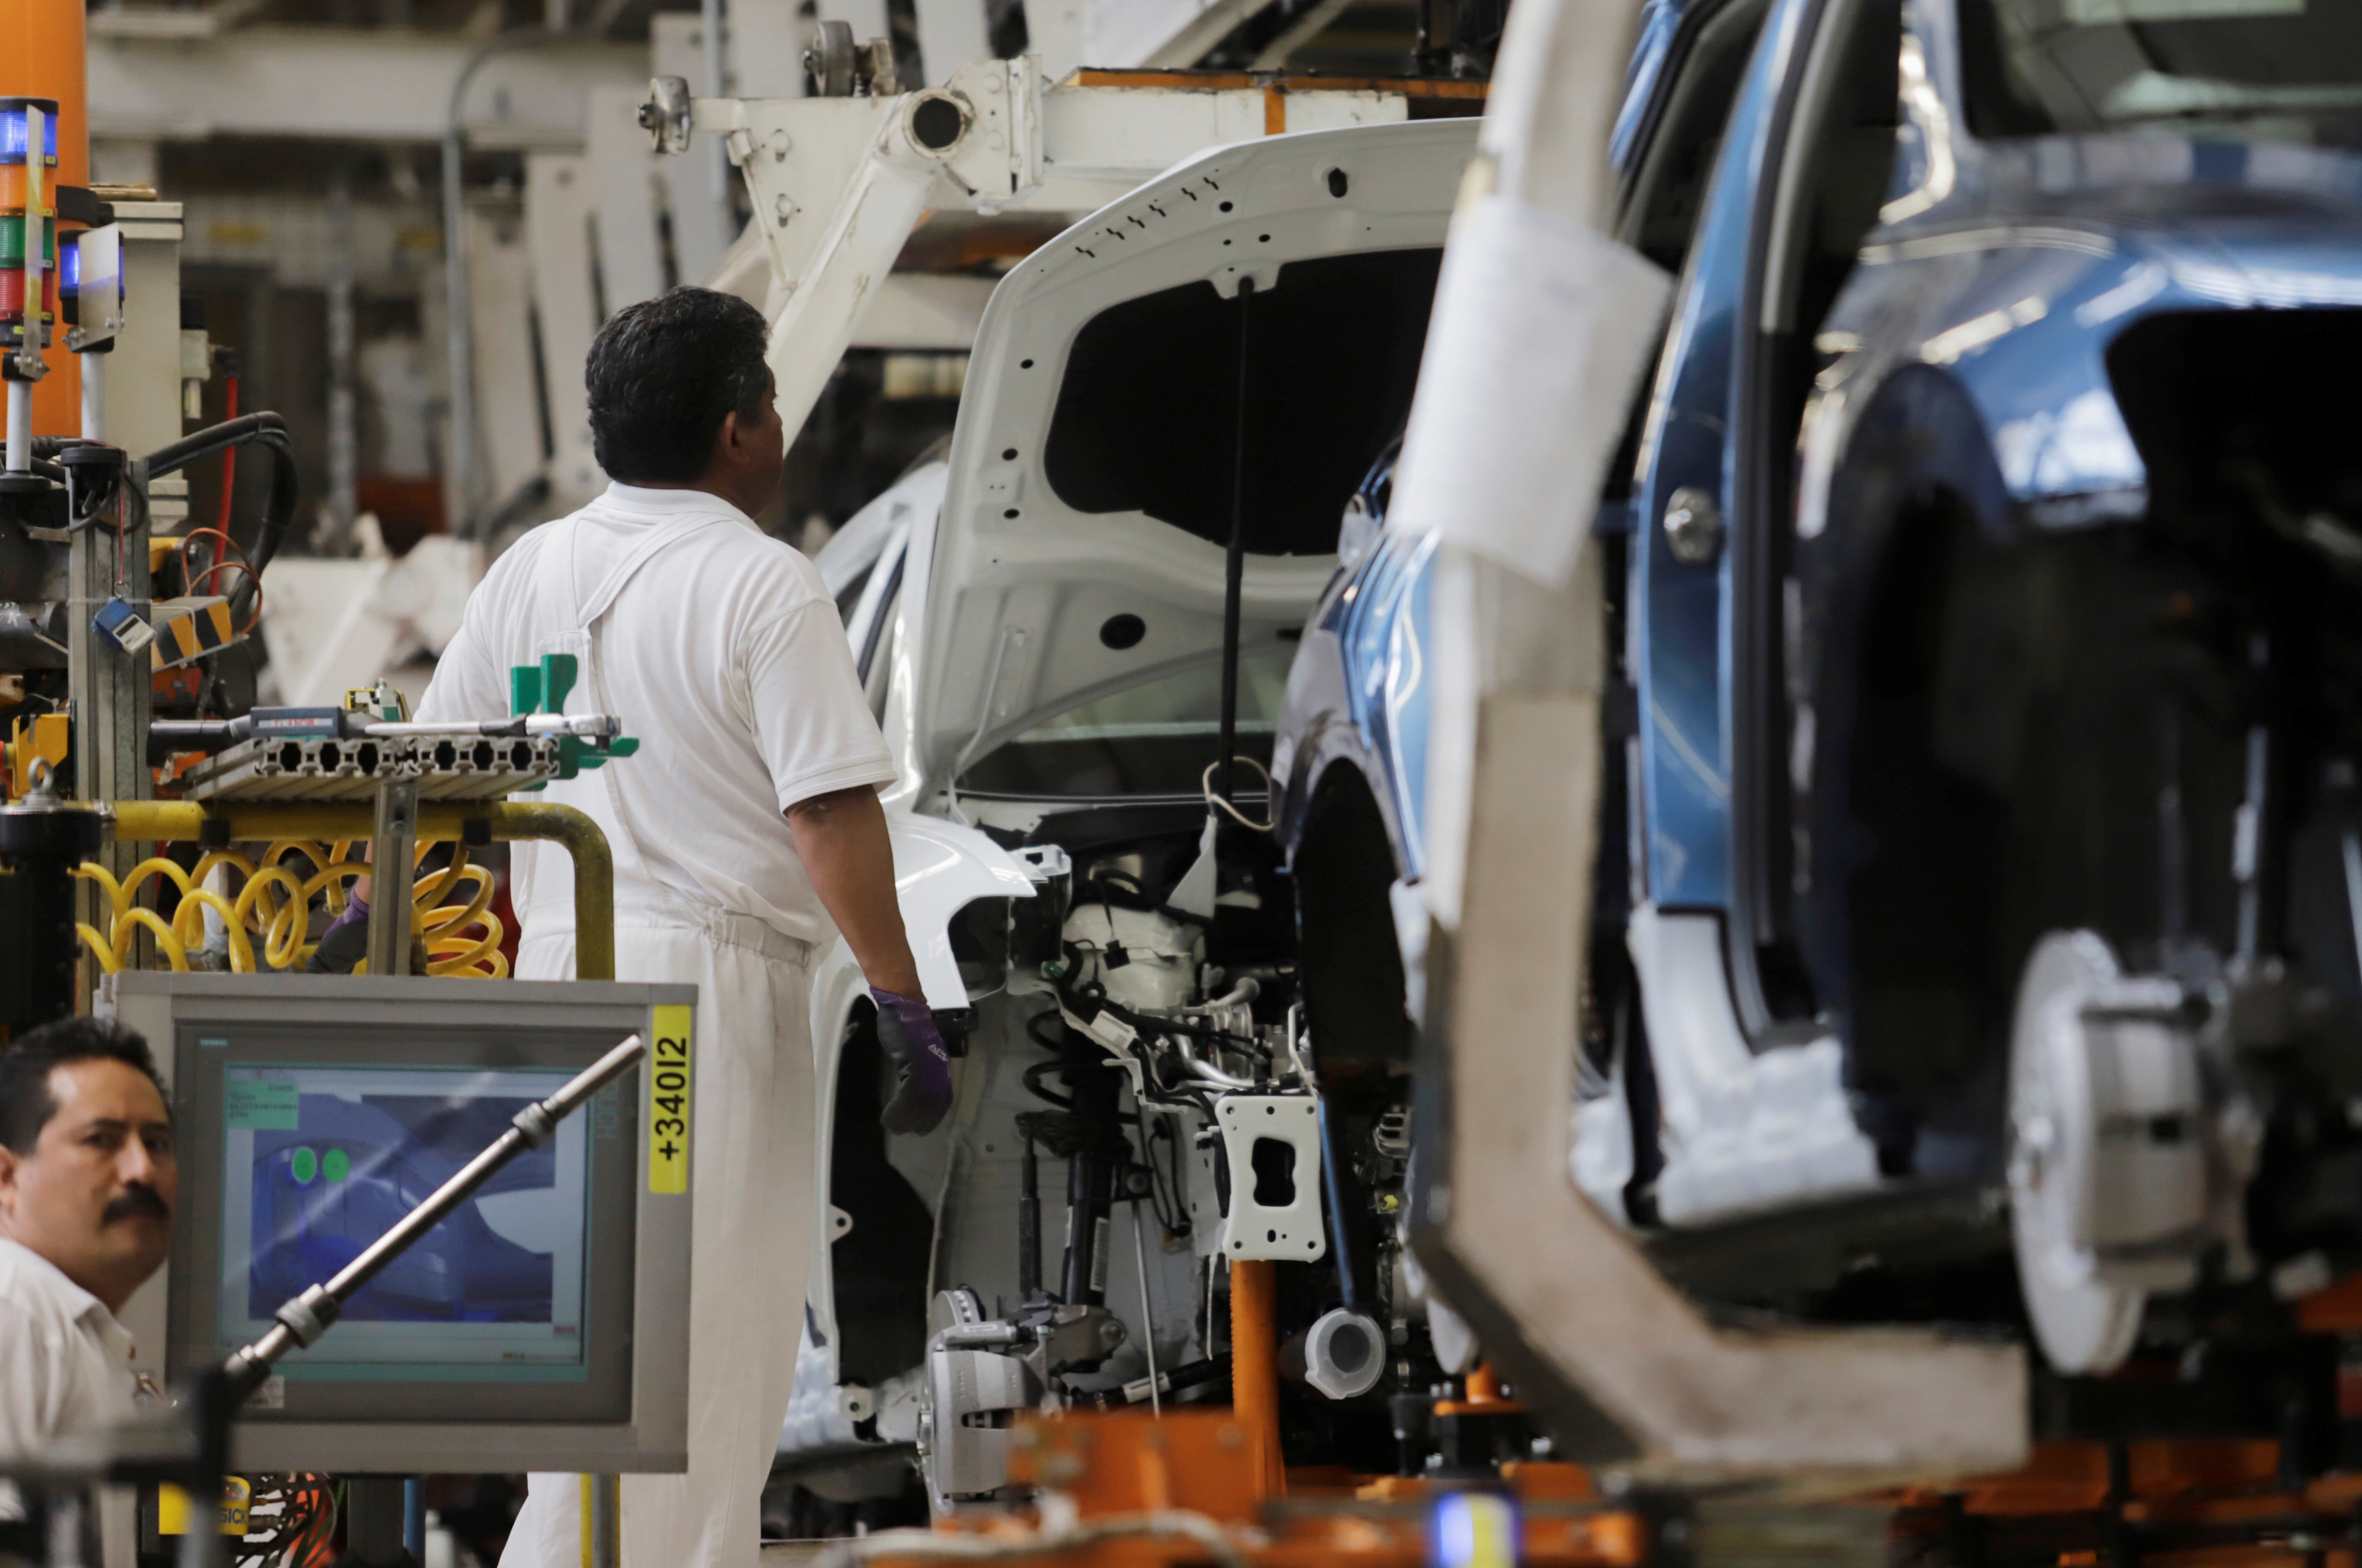 An employee works on the production line of the Volkswagen Tiguan cars at the company's assembly plant in Puebla, Mexico, July 10, 2019. Picture taken on July 10, 2019.  REUTERS/Imelda Medina/Files